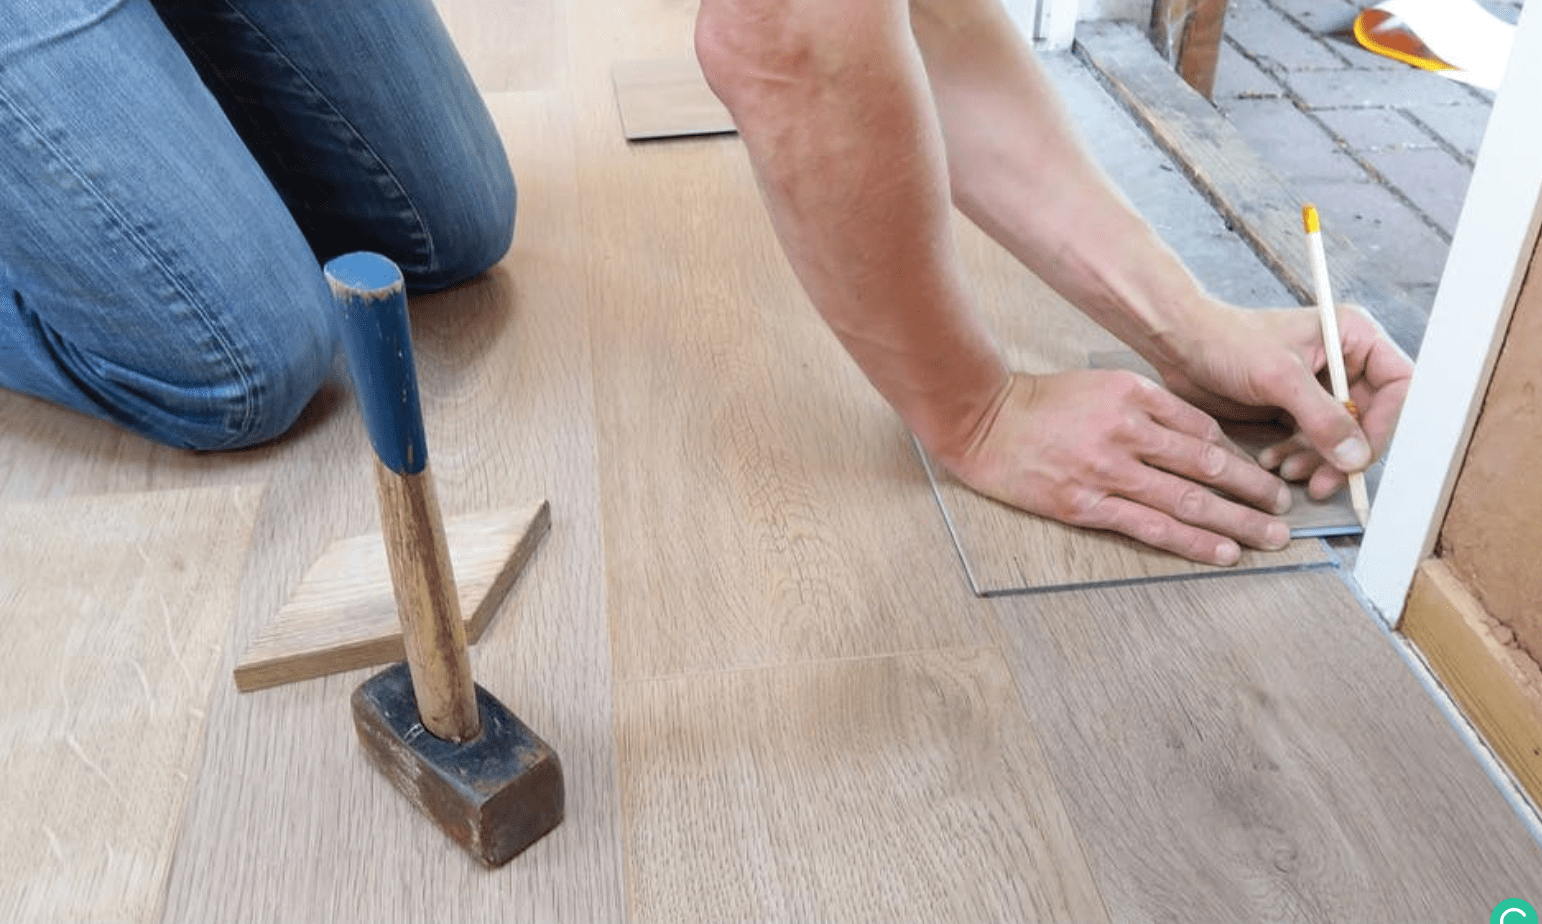 Top cheap ways to finish a basement floor - Measuring tile